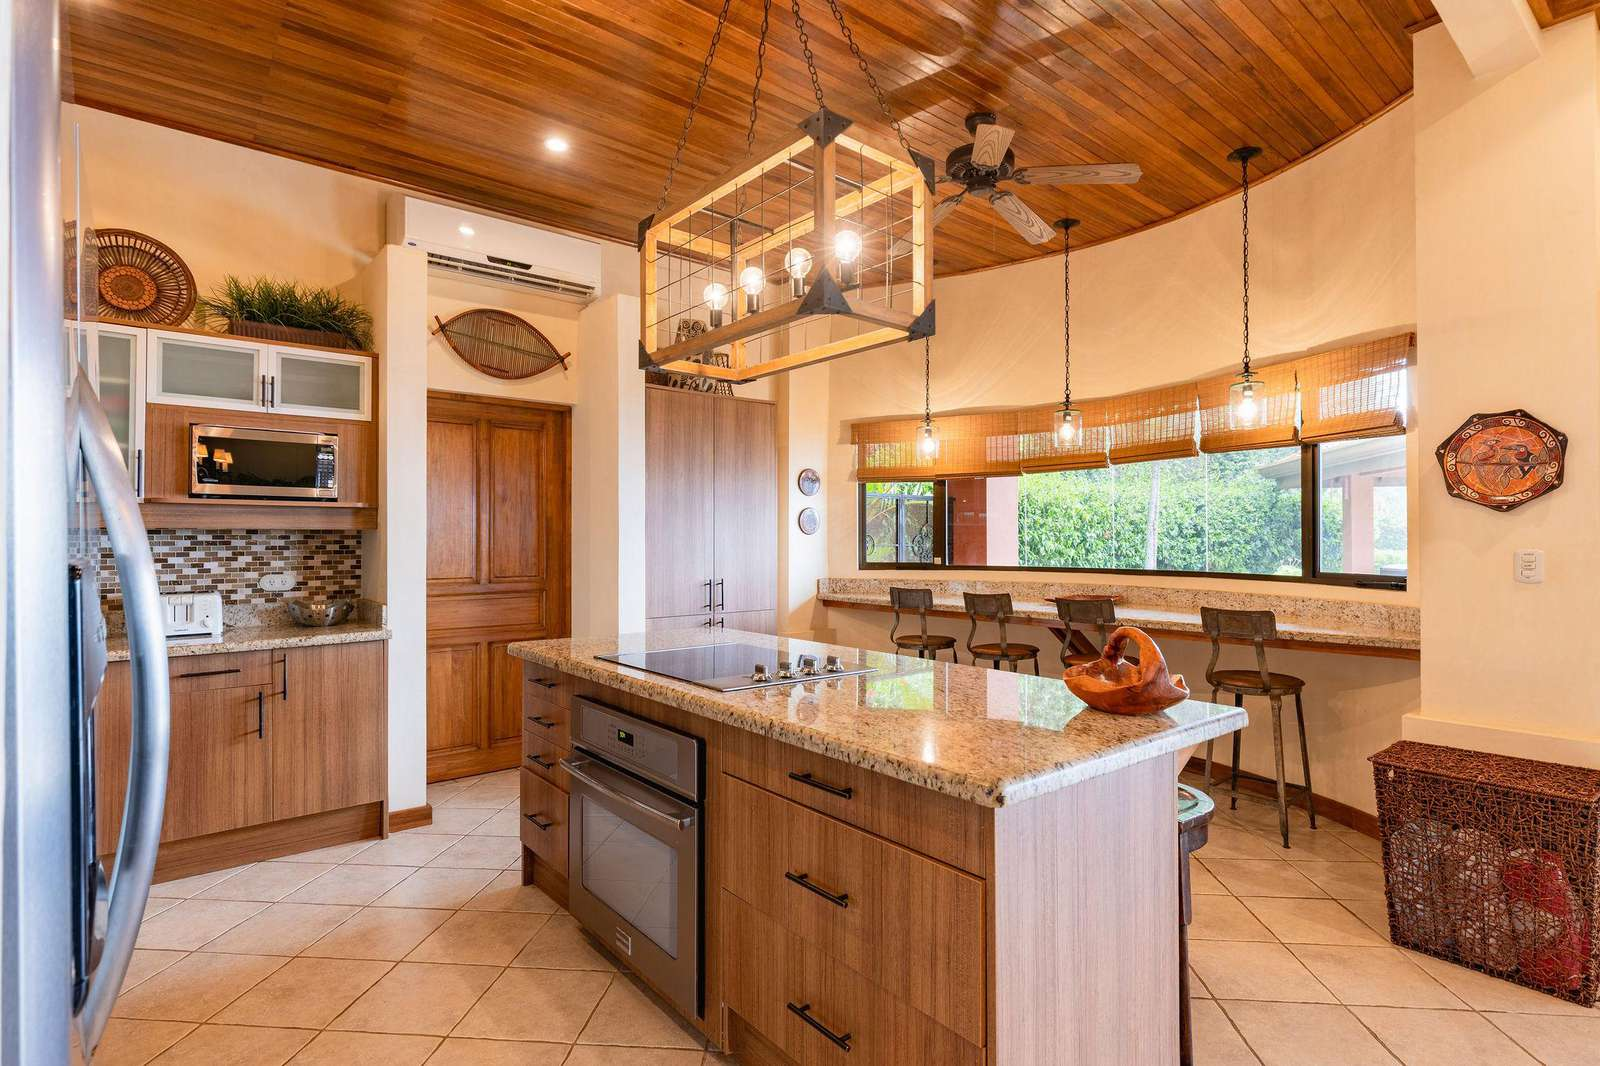 Gourmet kitchen, island